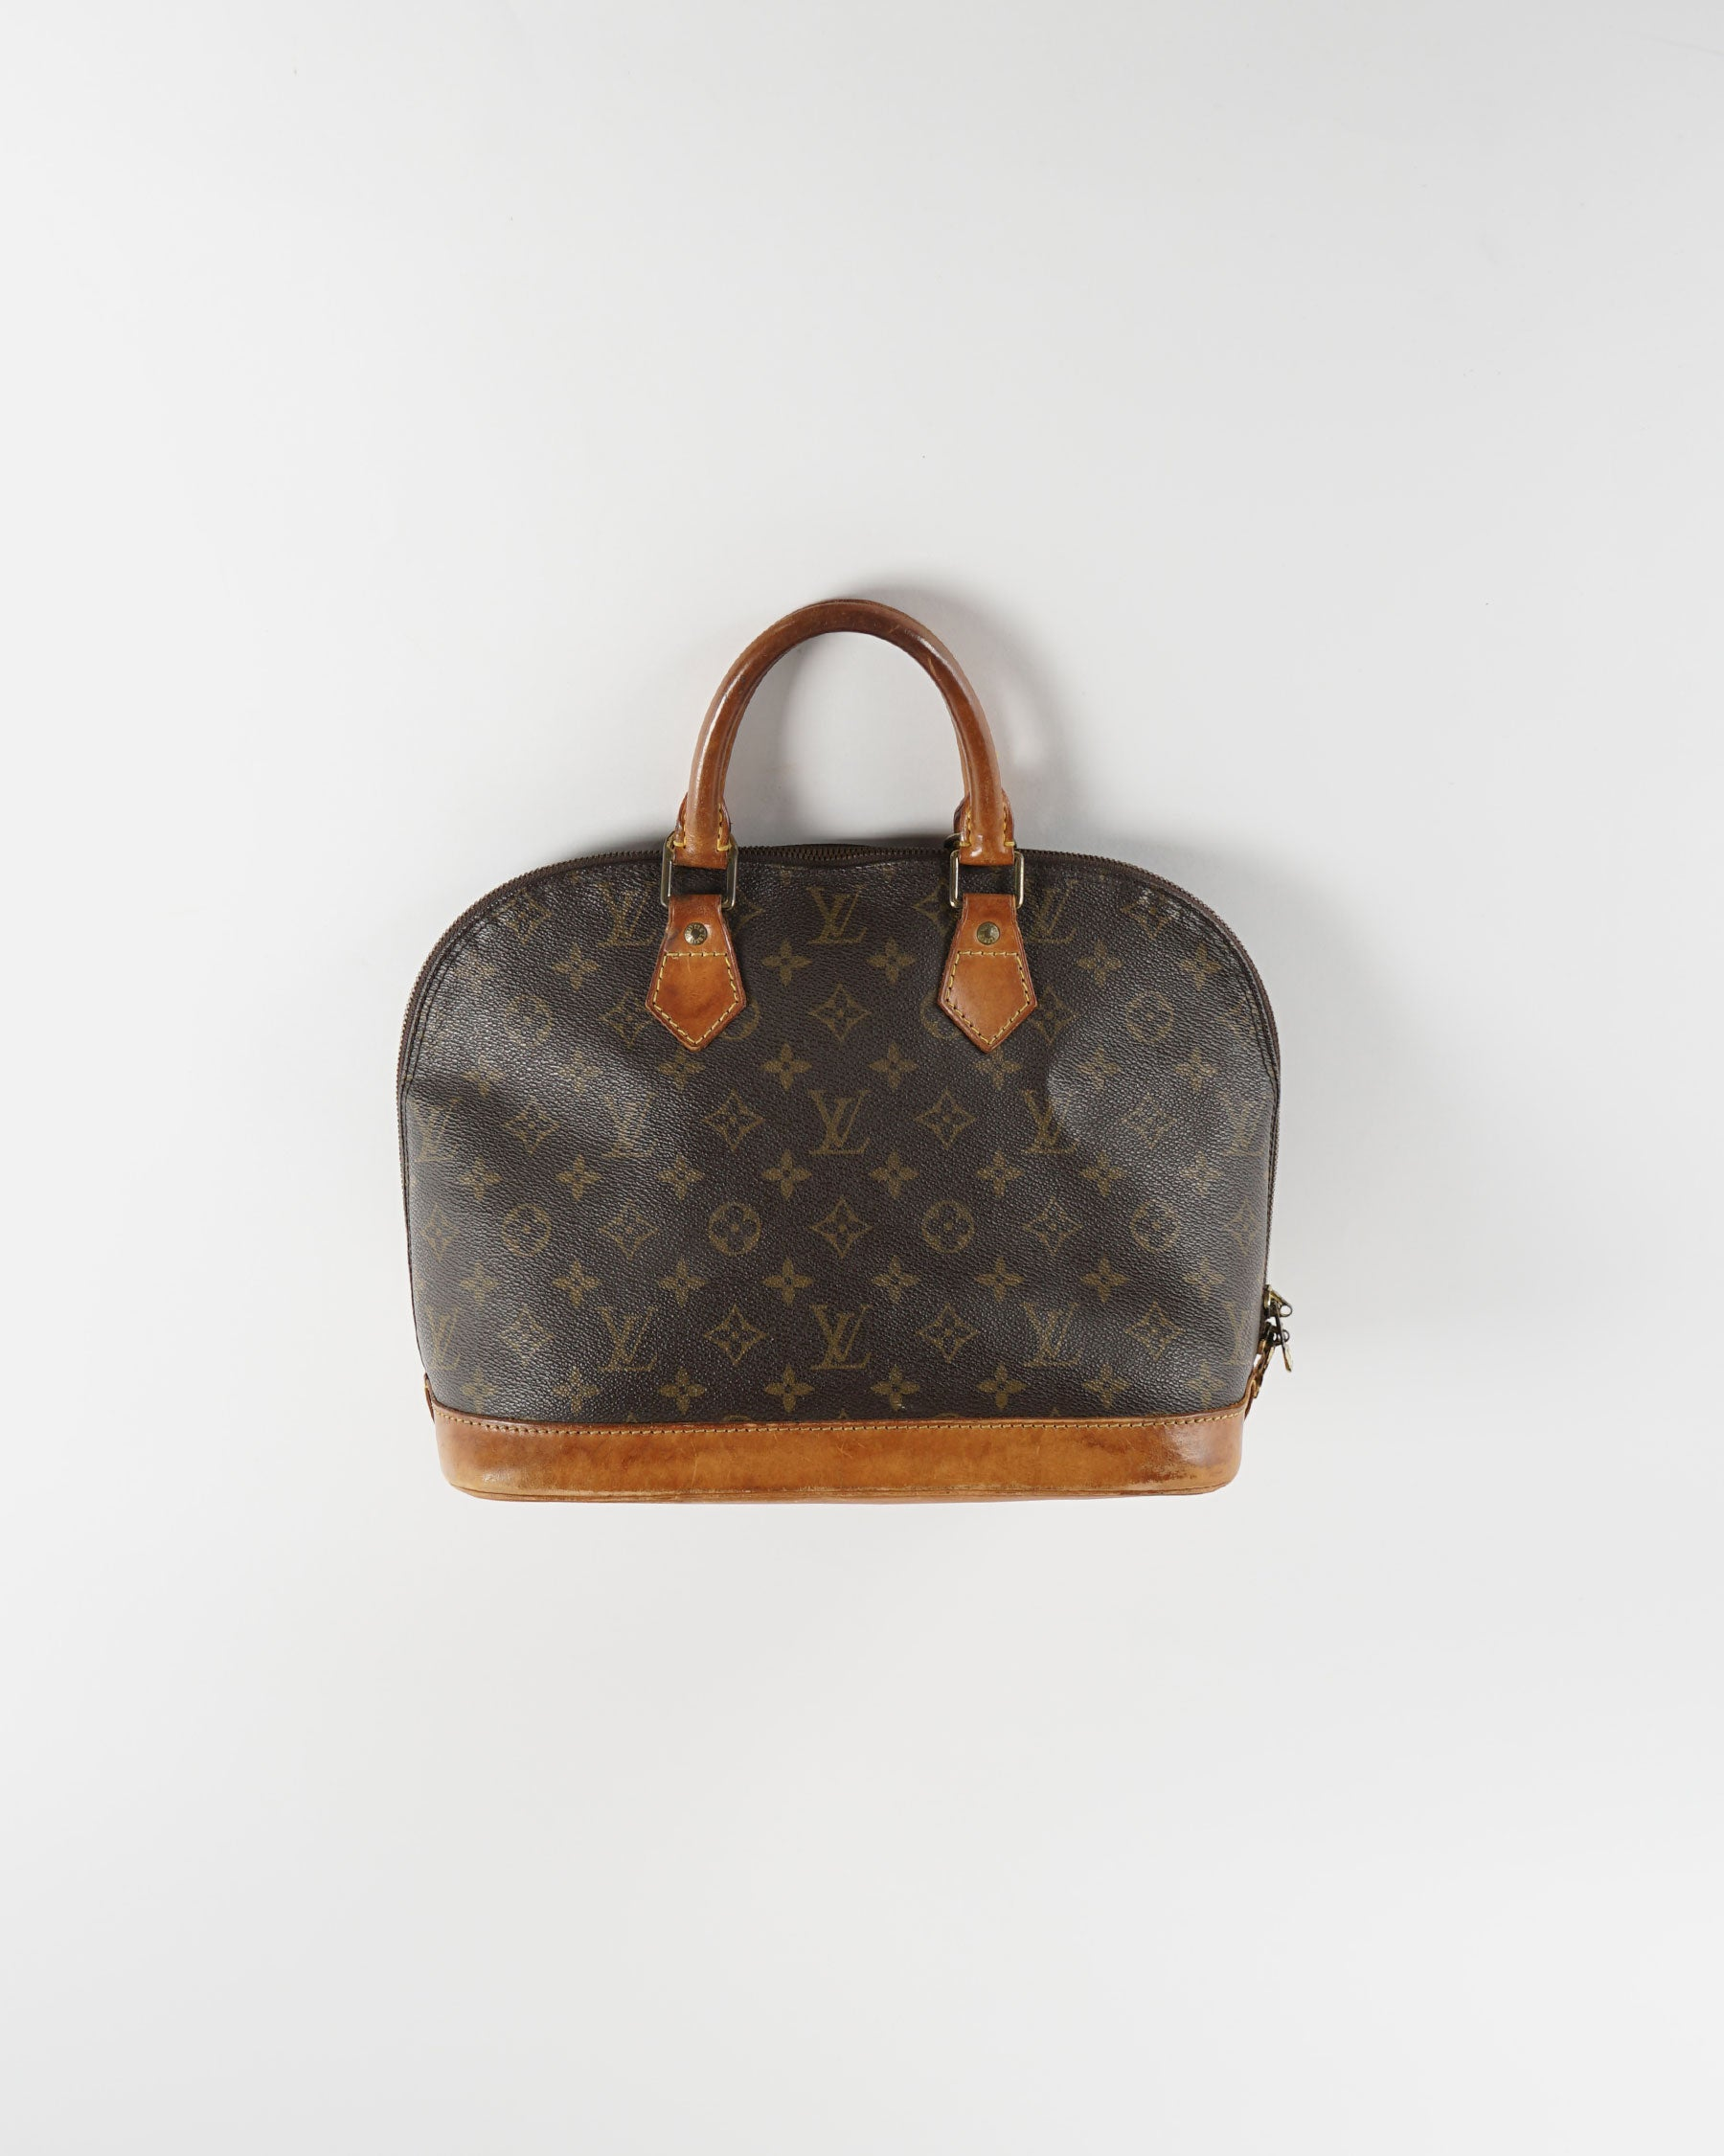 Monogram Bag Alma